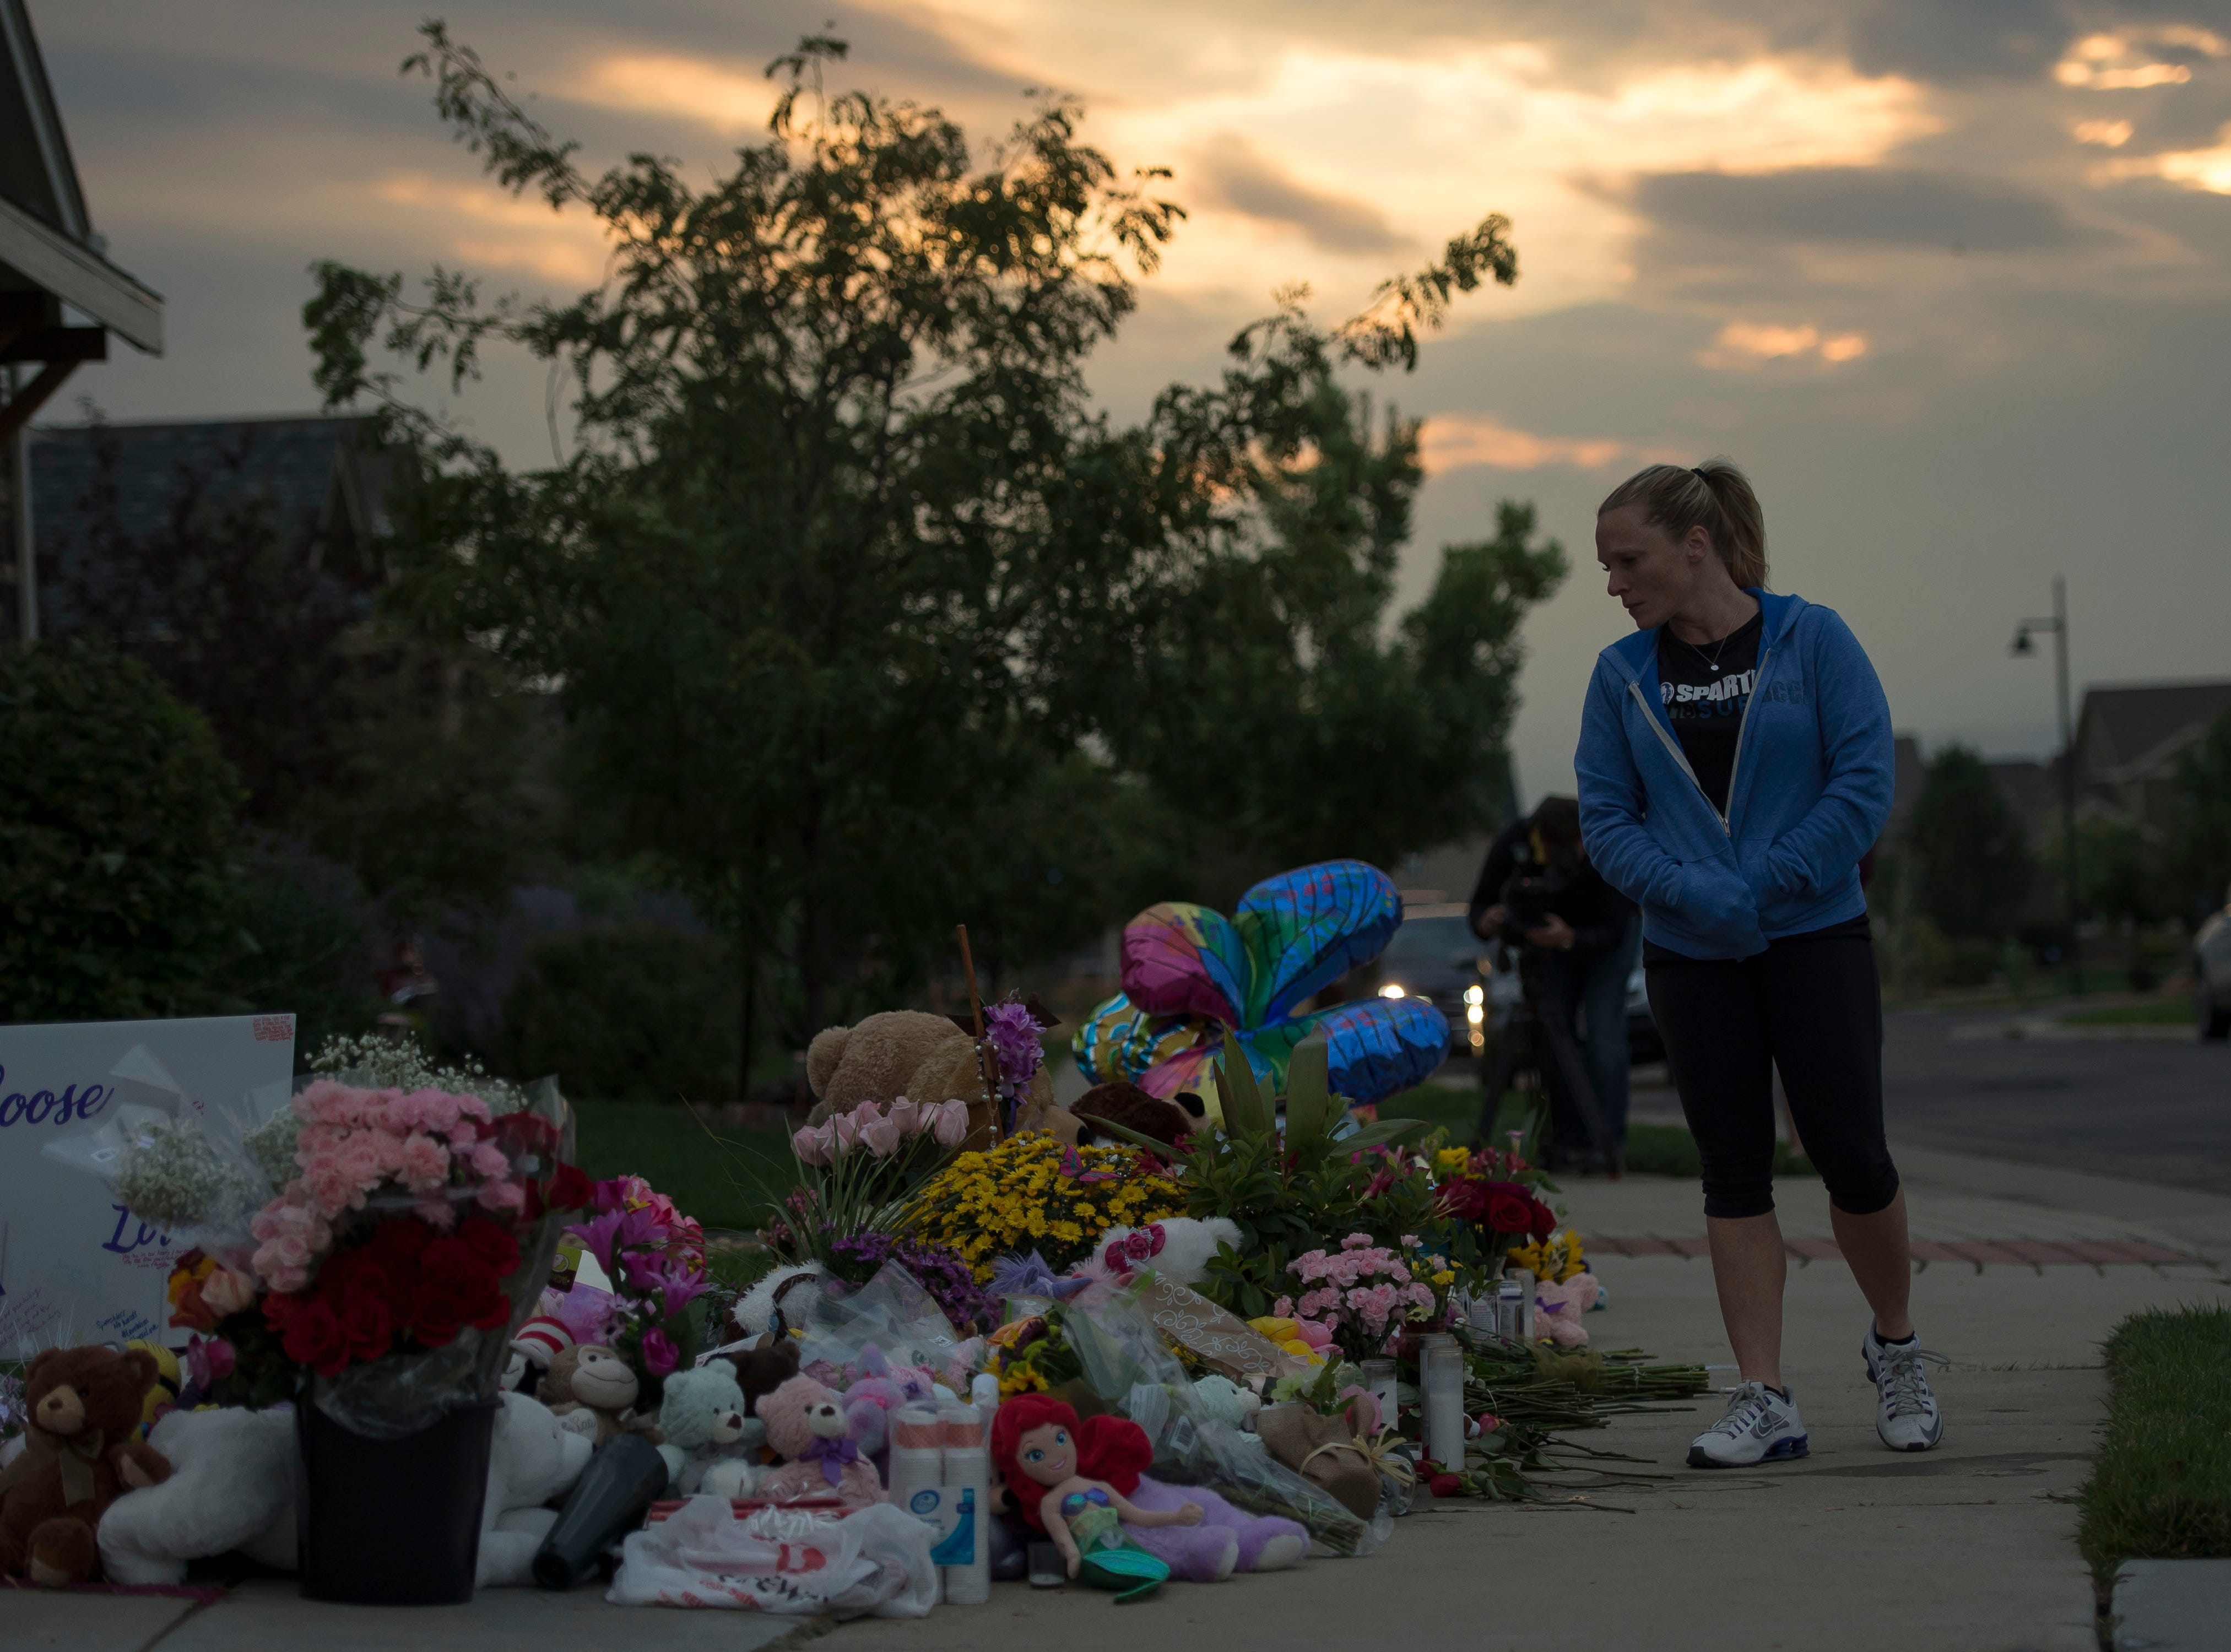 Firestone resident Reesa Rennecker walks by a memorial before a candle-lit vigil for the slain Shanann Watts and her two daughters, Bella, 4, and Celeste, 3, in front of the Watts' family home on Friday, Aug. 17, 2018, in Frederick, Colo.